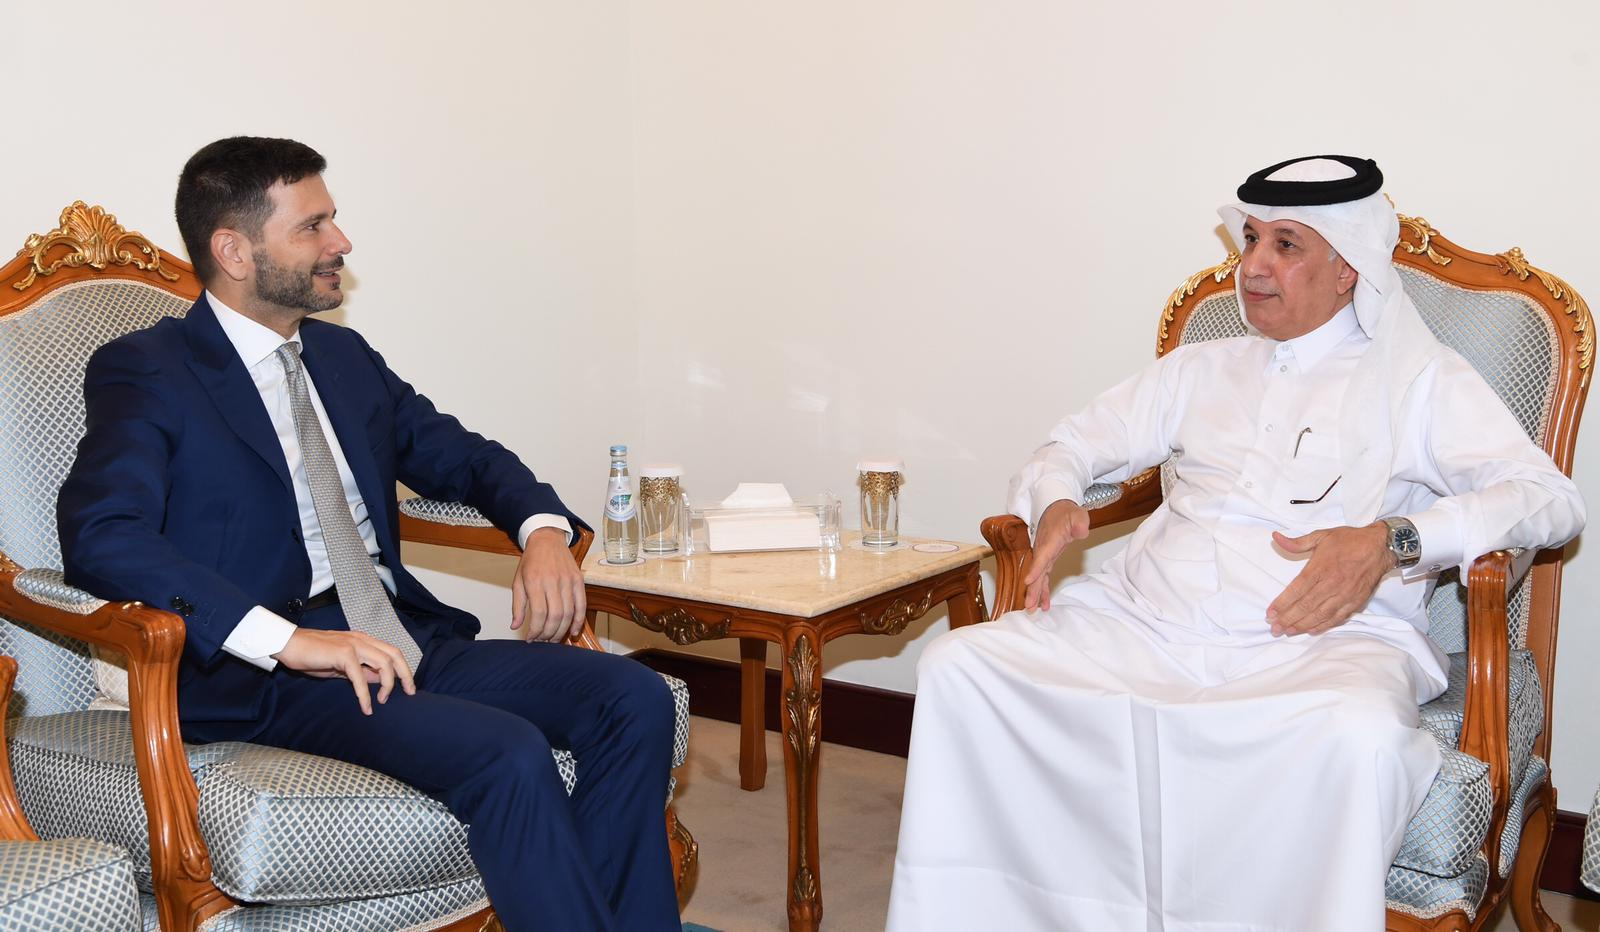 Deputy Prime Minister and Minister of Foreign Affairs Receives Written Message from Italian Foreign Minister